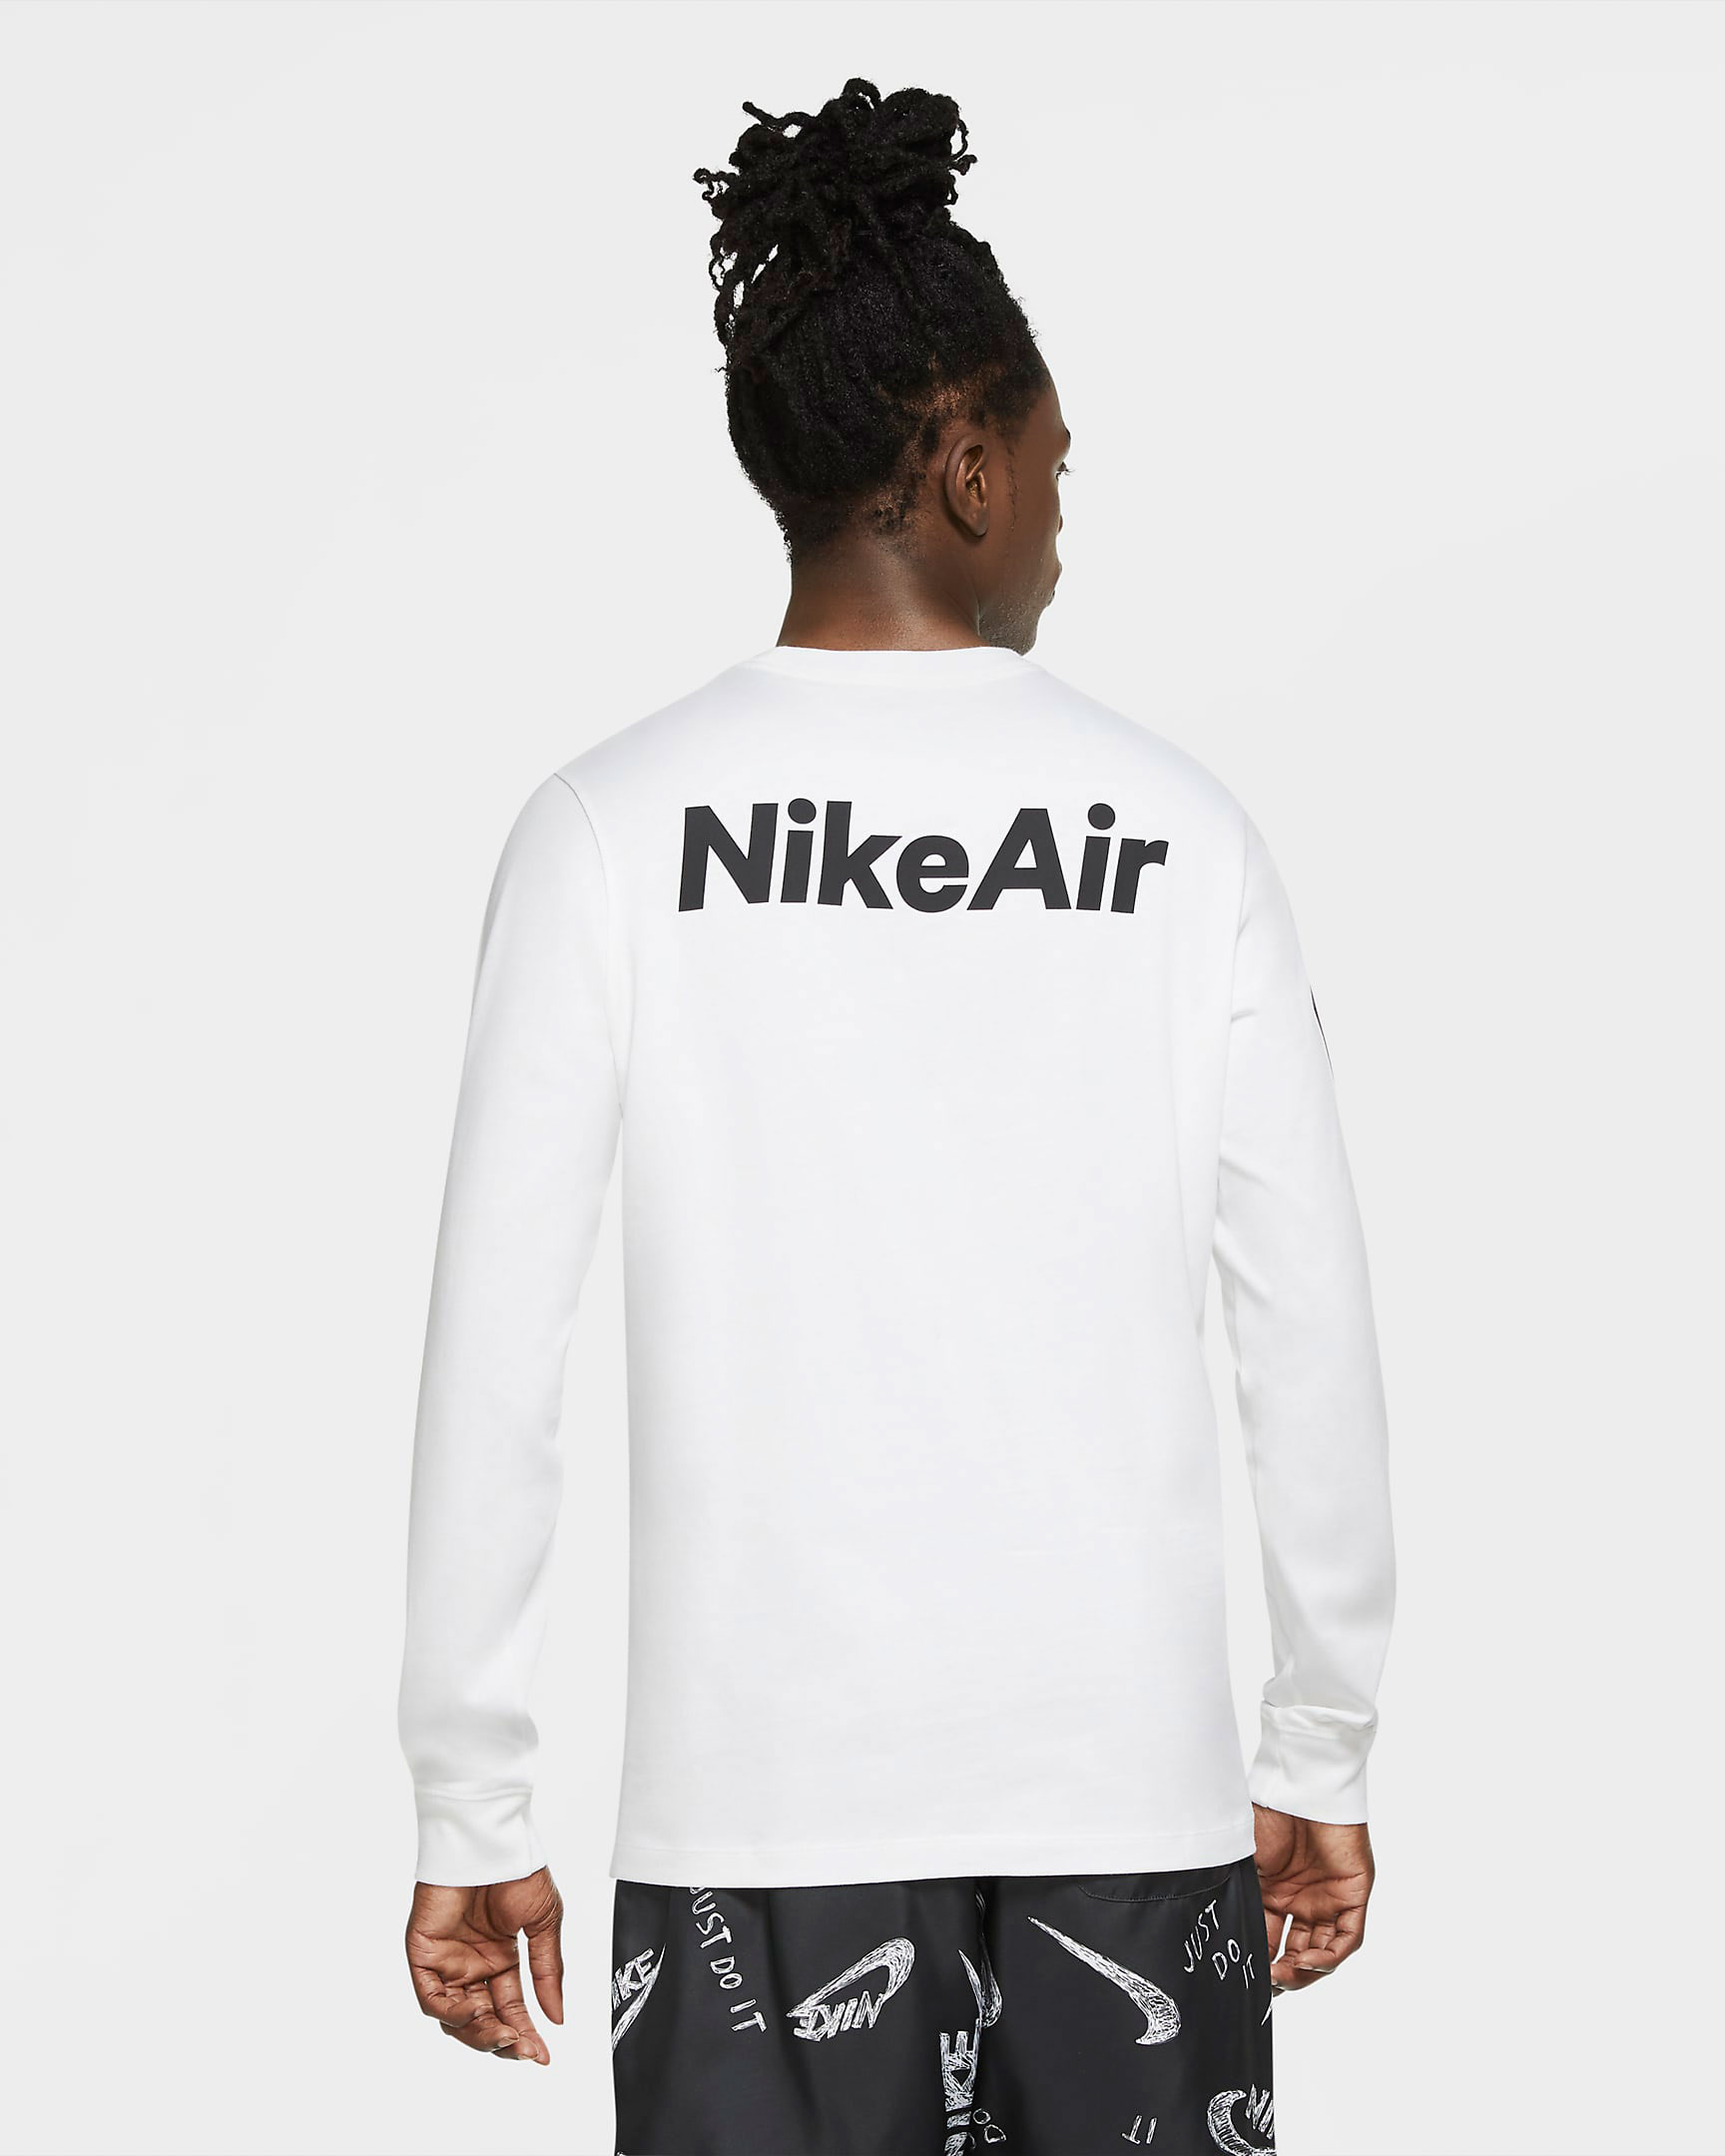 nike-air-long-sleeve-shirt-white-black-2